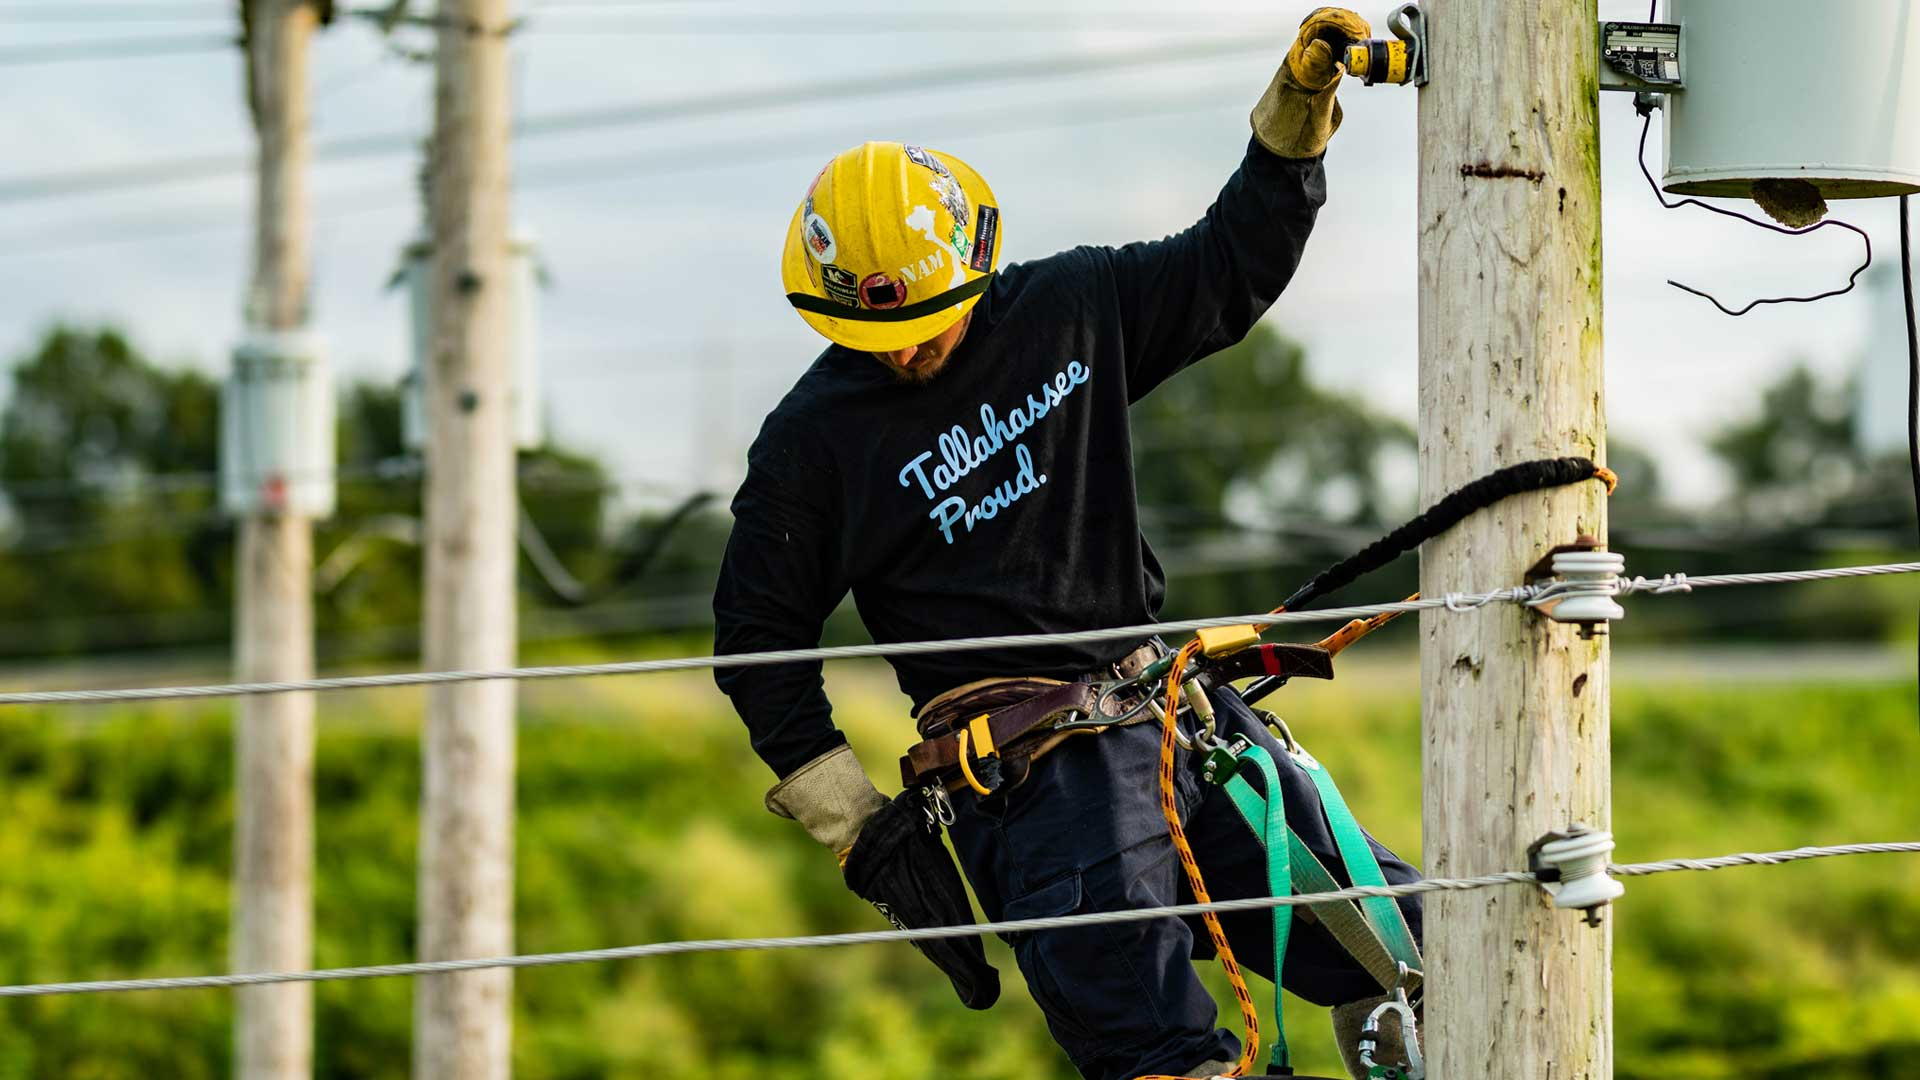 A lineman wearing a Tallahassee Proud shirt works on an electrical pole.